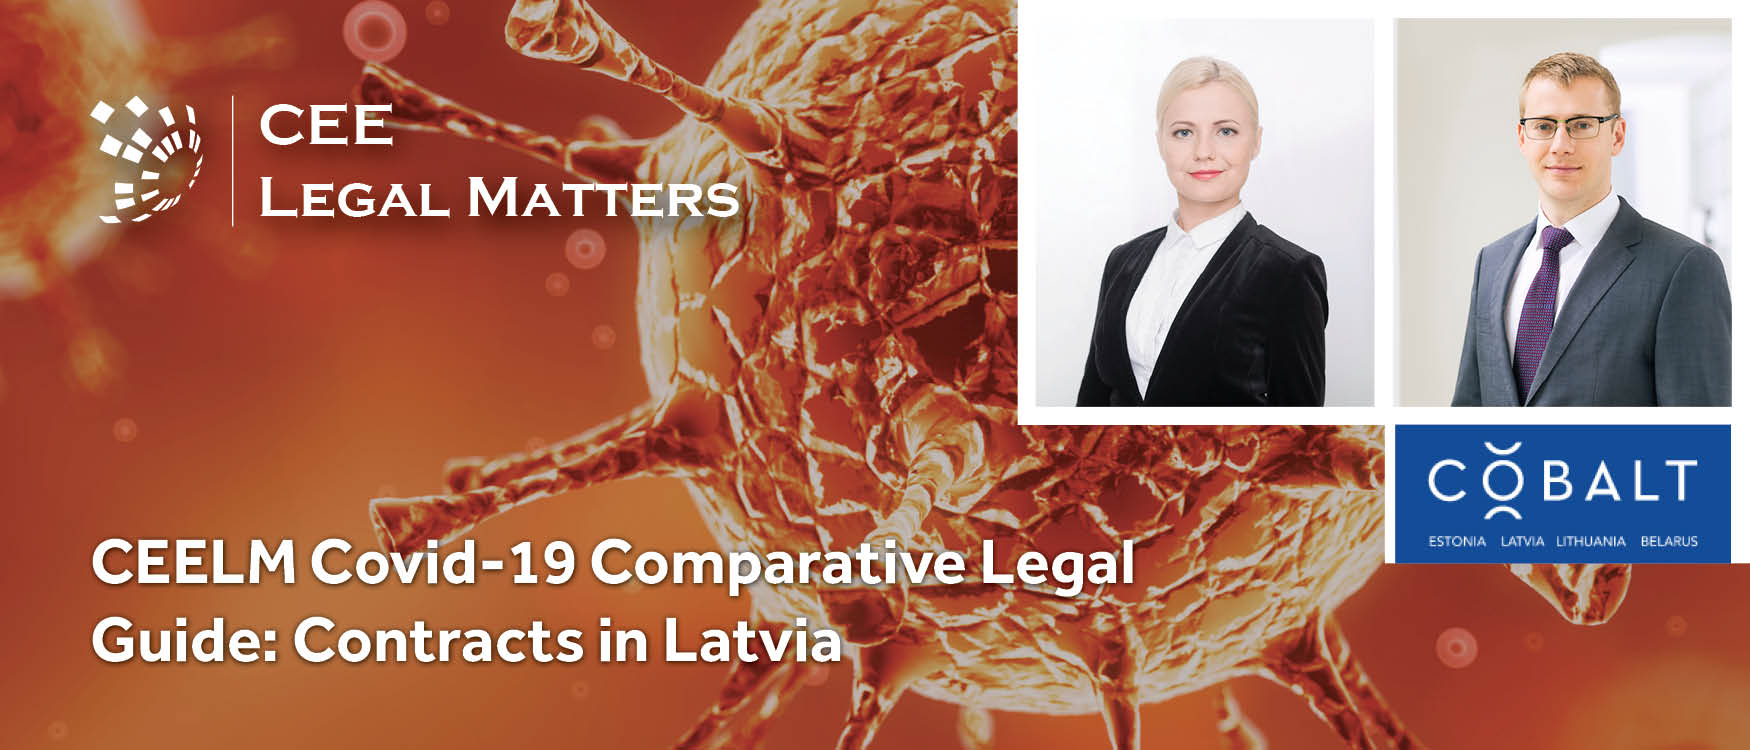 CEELM Covid-19 Comparative Legal Guide: Contracts in Latvia